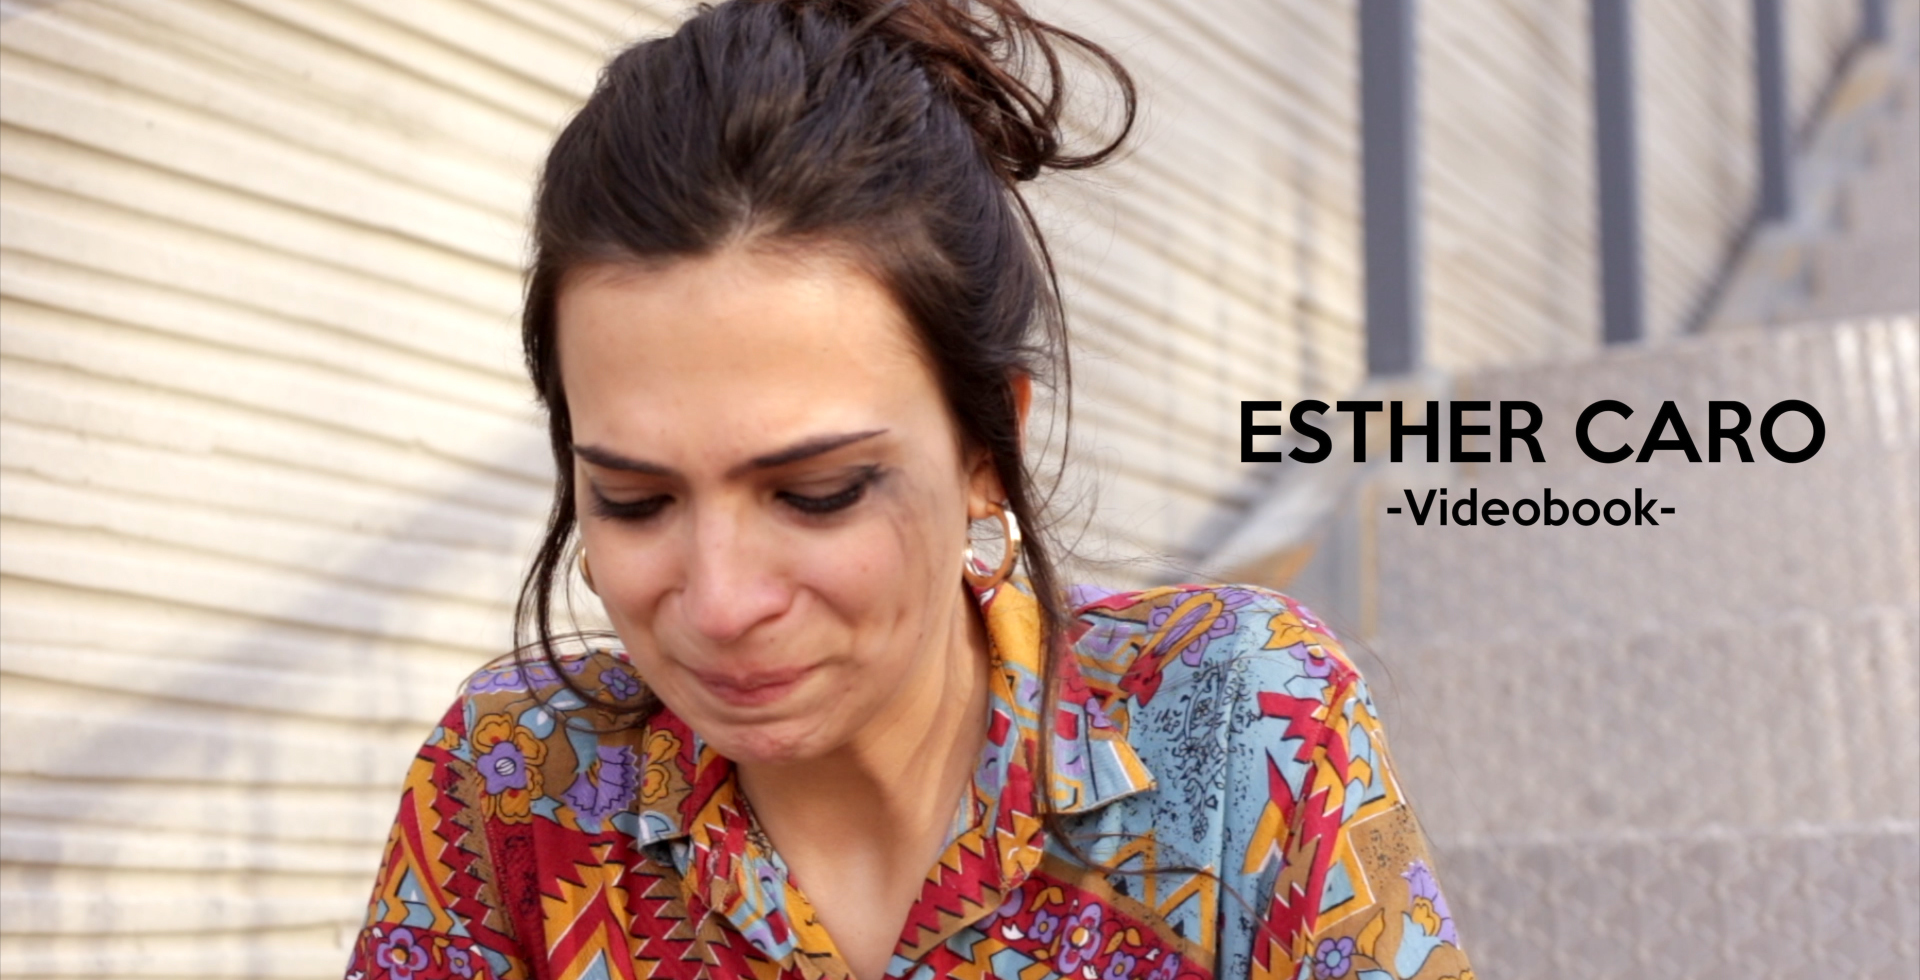 header image for the promotional video for the actress Esther Caro